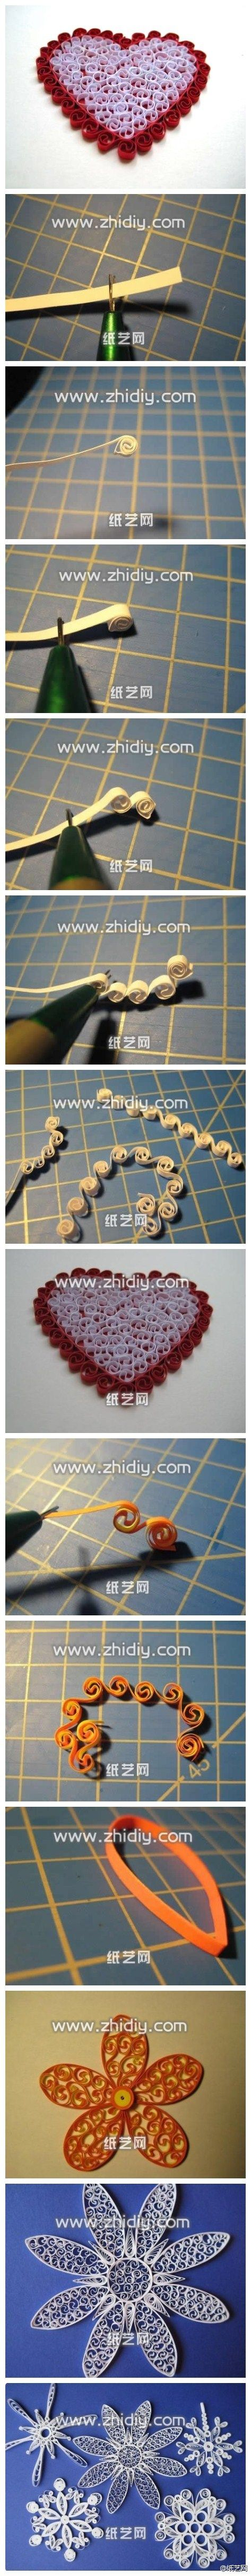 Heart quilling - I've not seen this technique before.  Interesting possibilities.